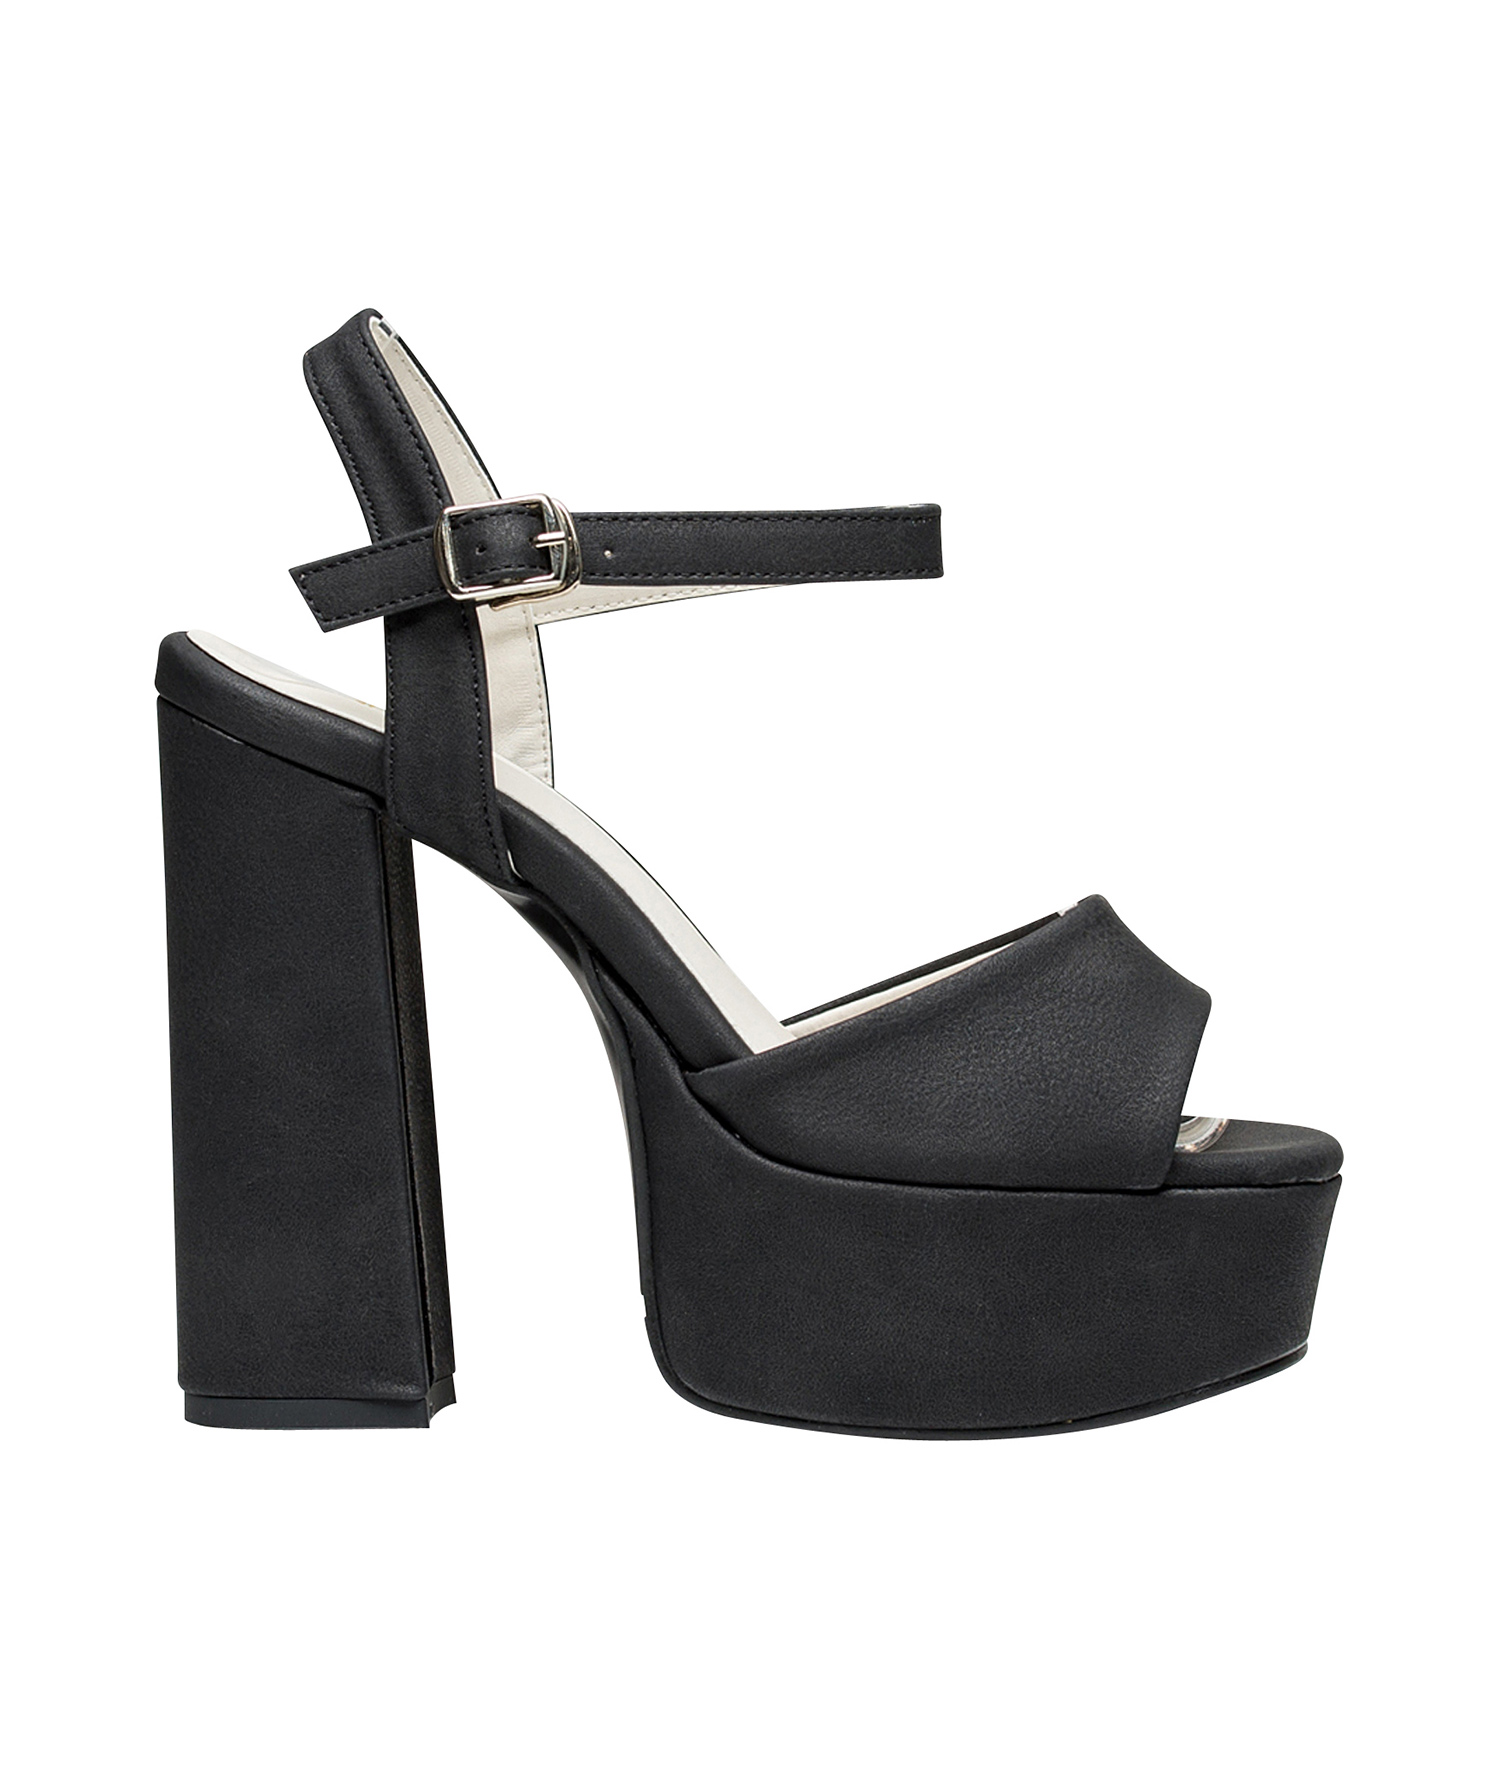 AnnaKastle Womens Ankle Strap High Platform Chunky Heel Sandals Black acab9d3f6